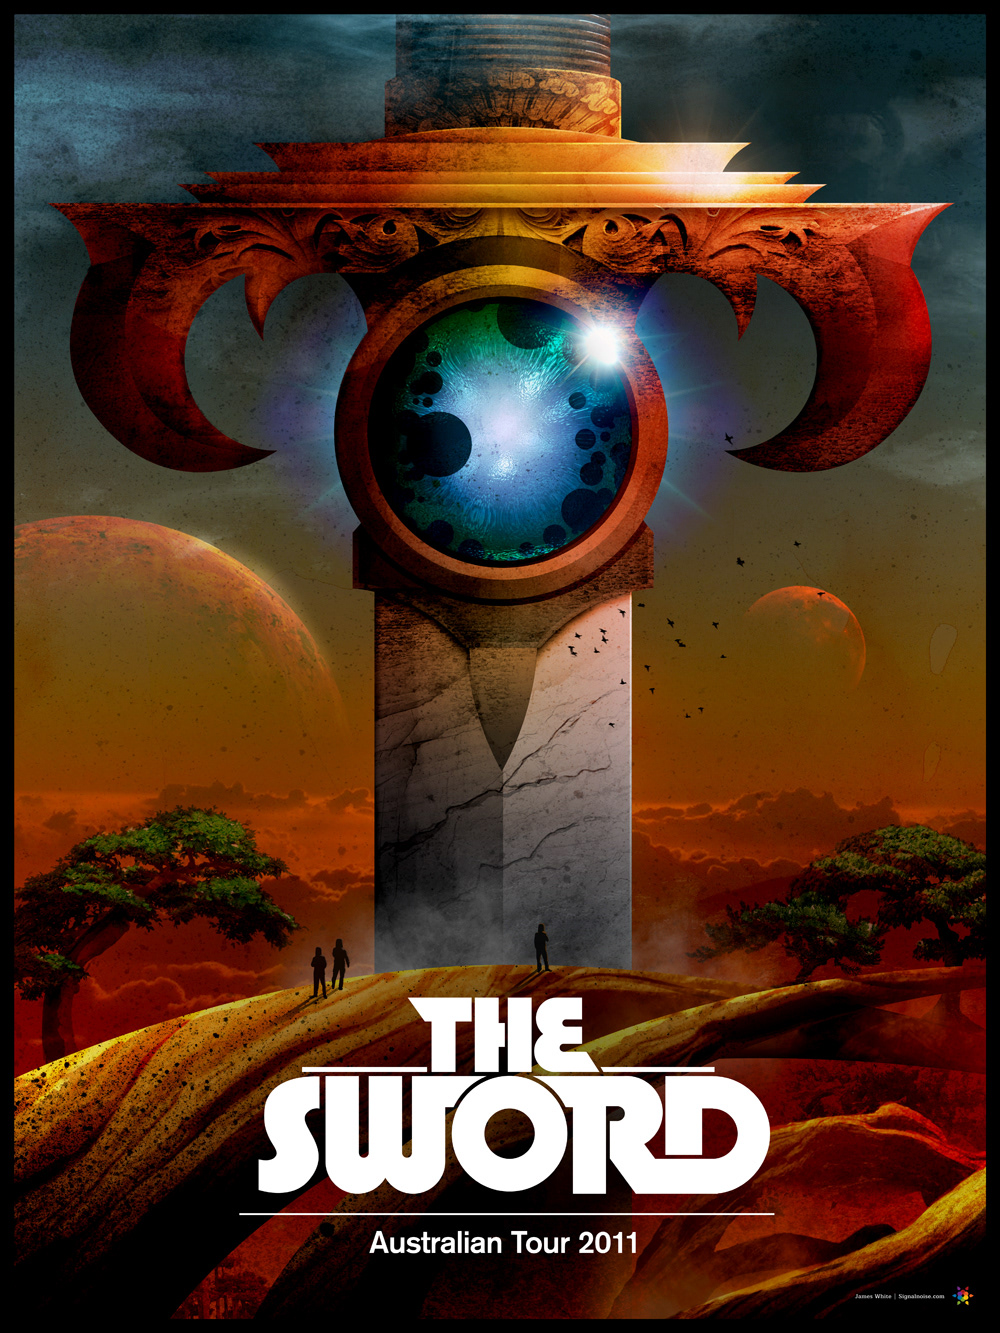 Signalnoise :: The Work of James White - The Sword